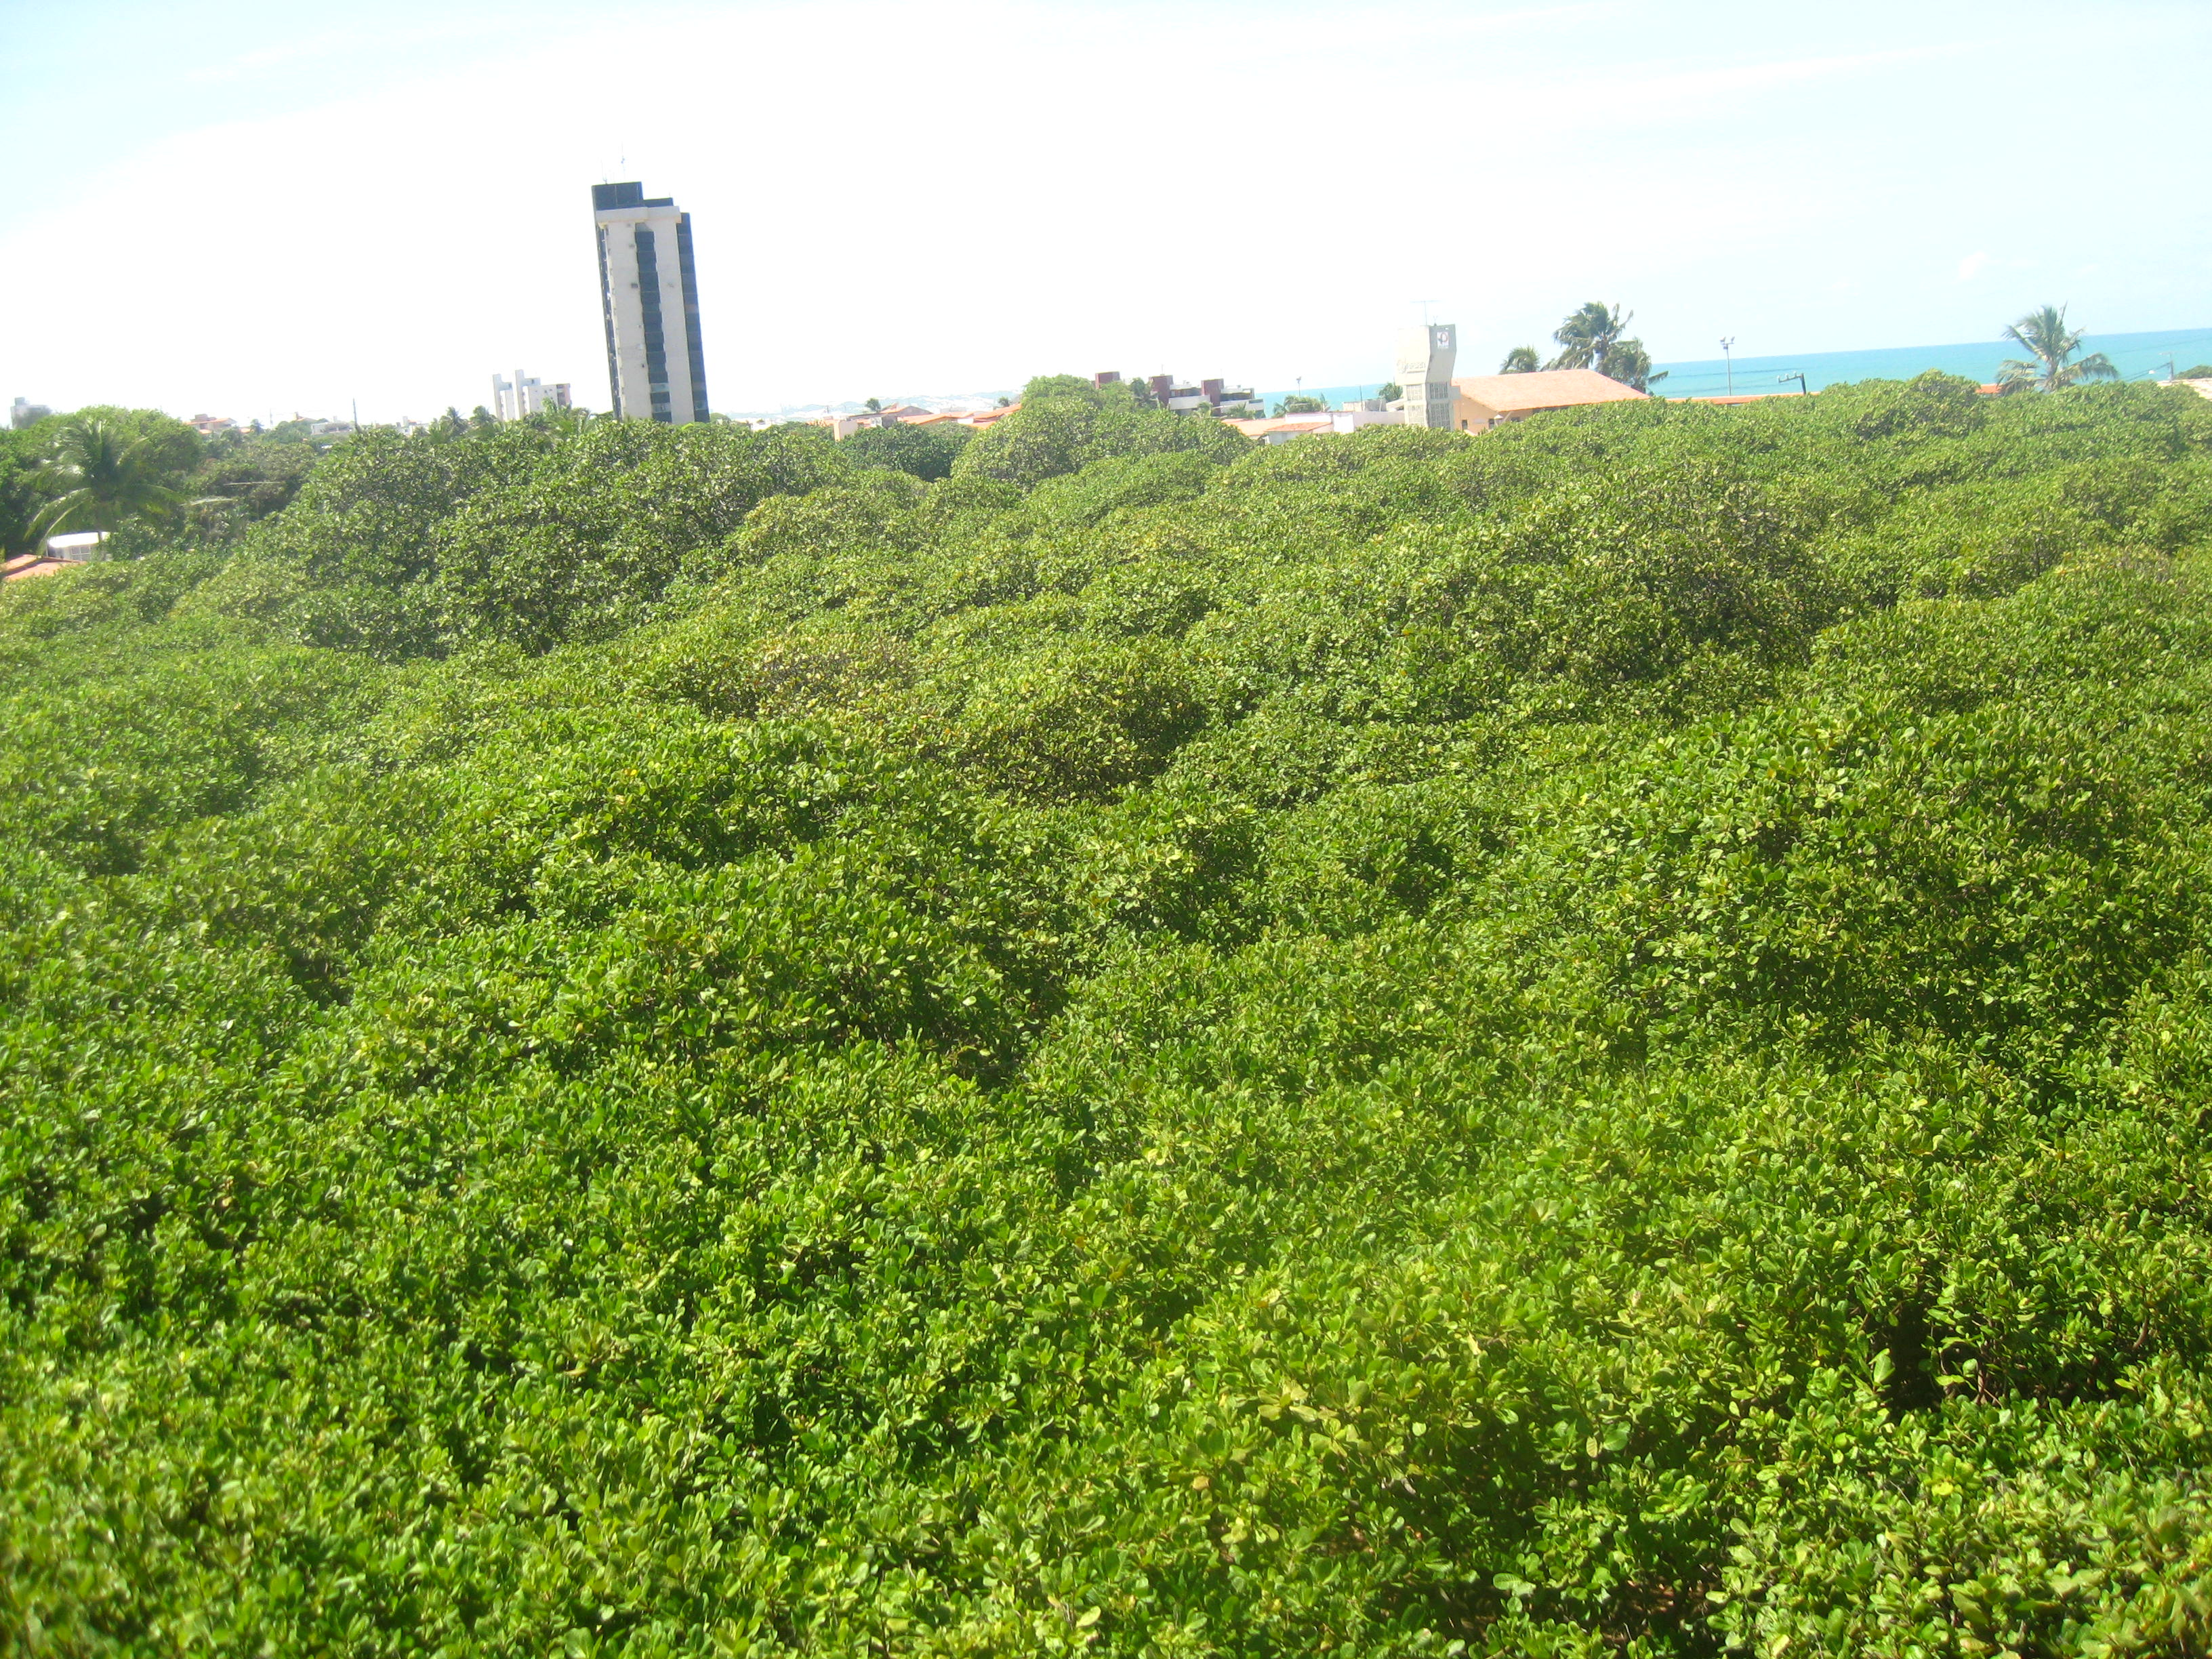 The largest cashew tree in the world!